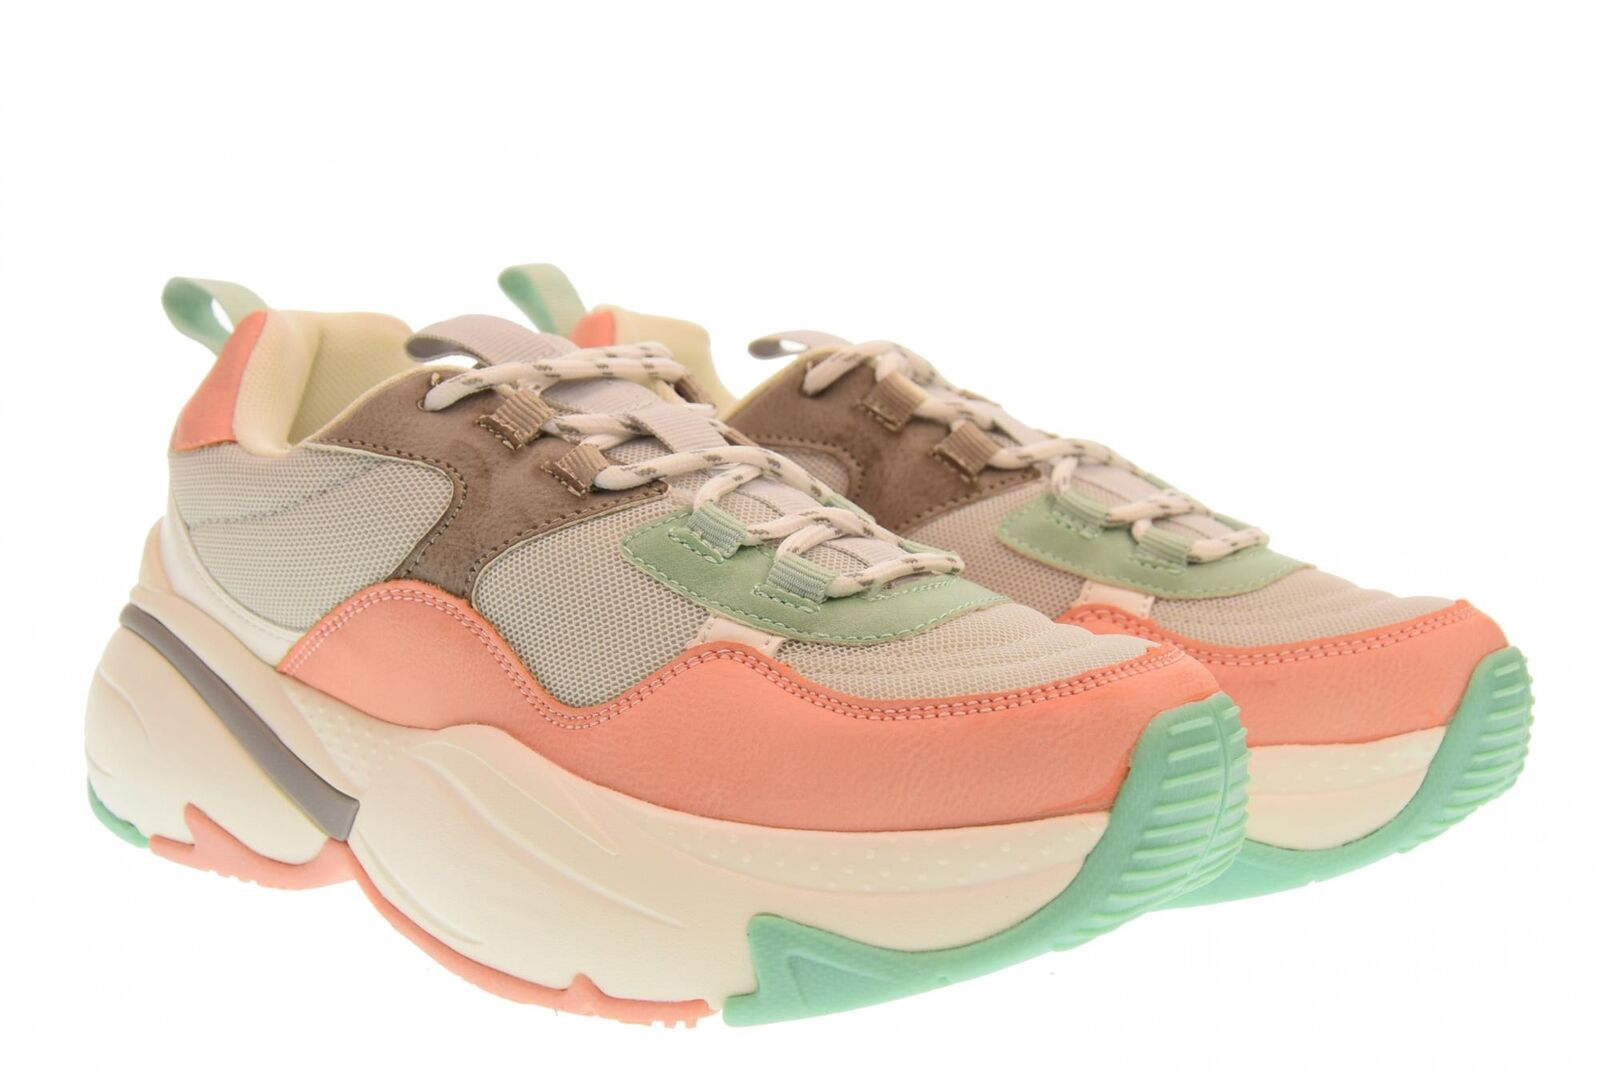 Victoria A18us shoes woman low sneakers 147102 pink